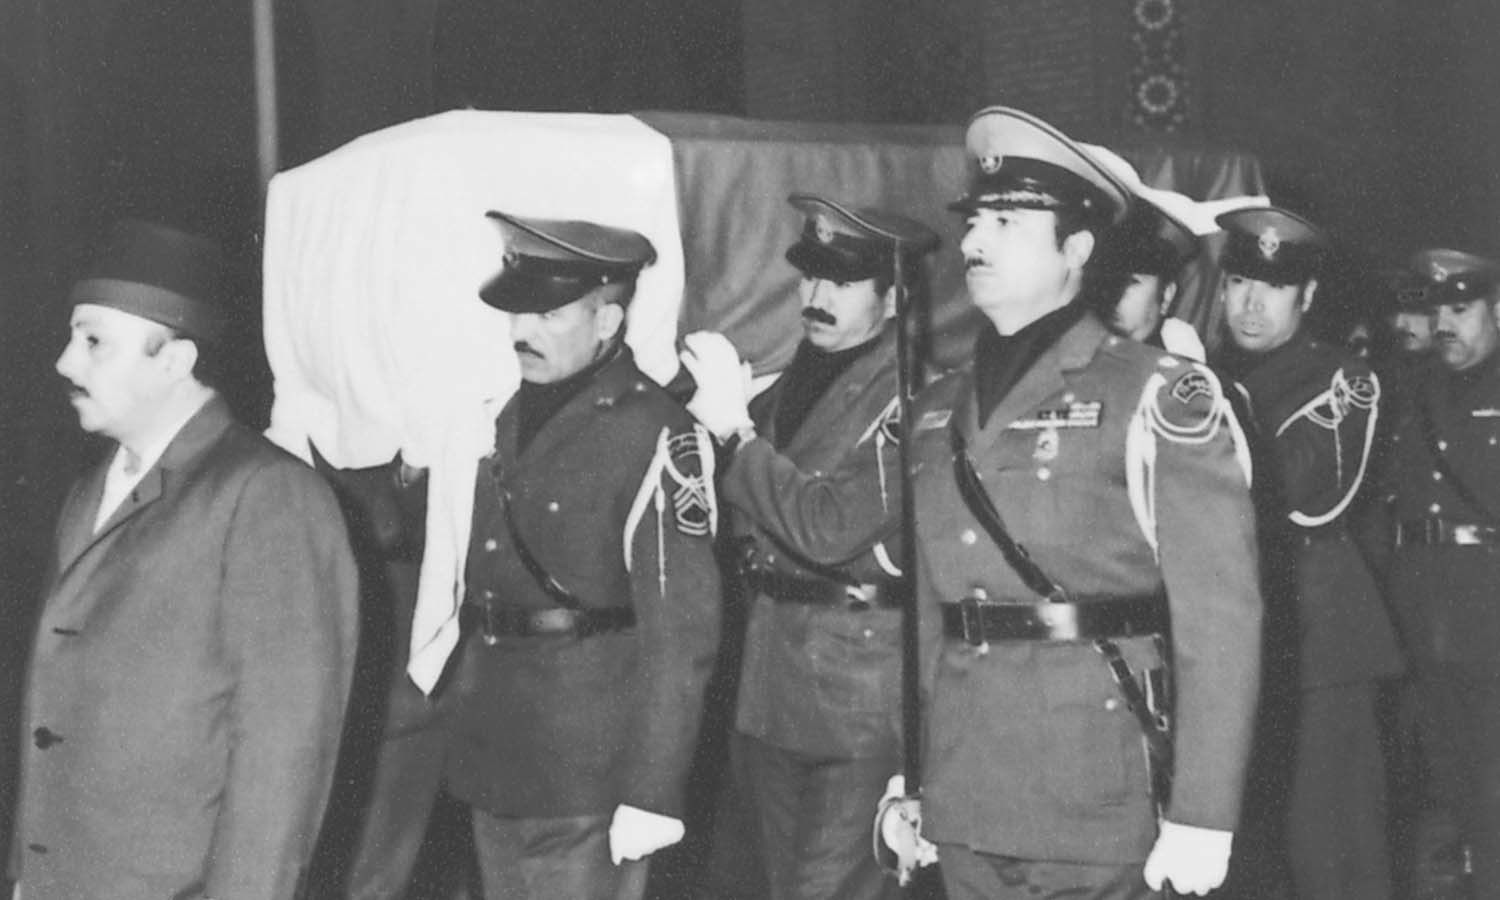 The coffin of Iskander Mirza being carried by Iranian army officers. | Photo: The Iskander Mirza Family Collection, Karachi